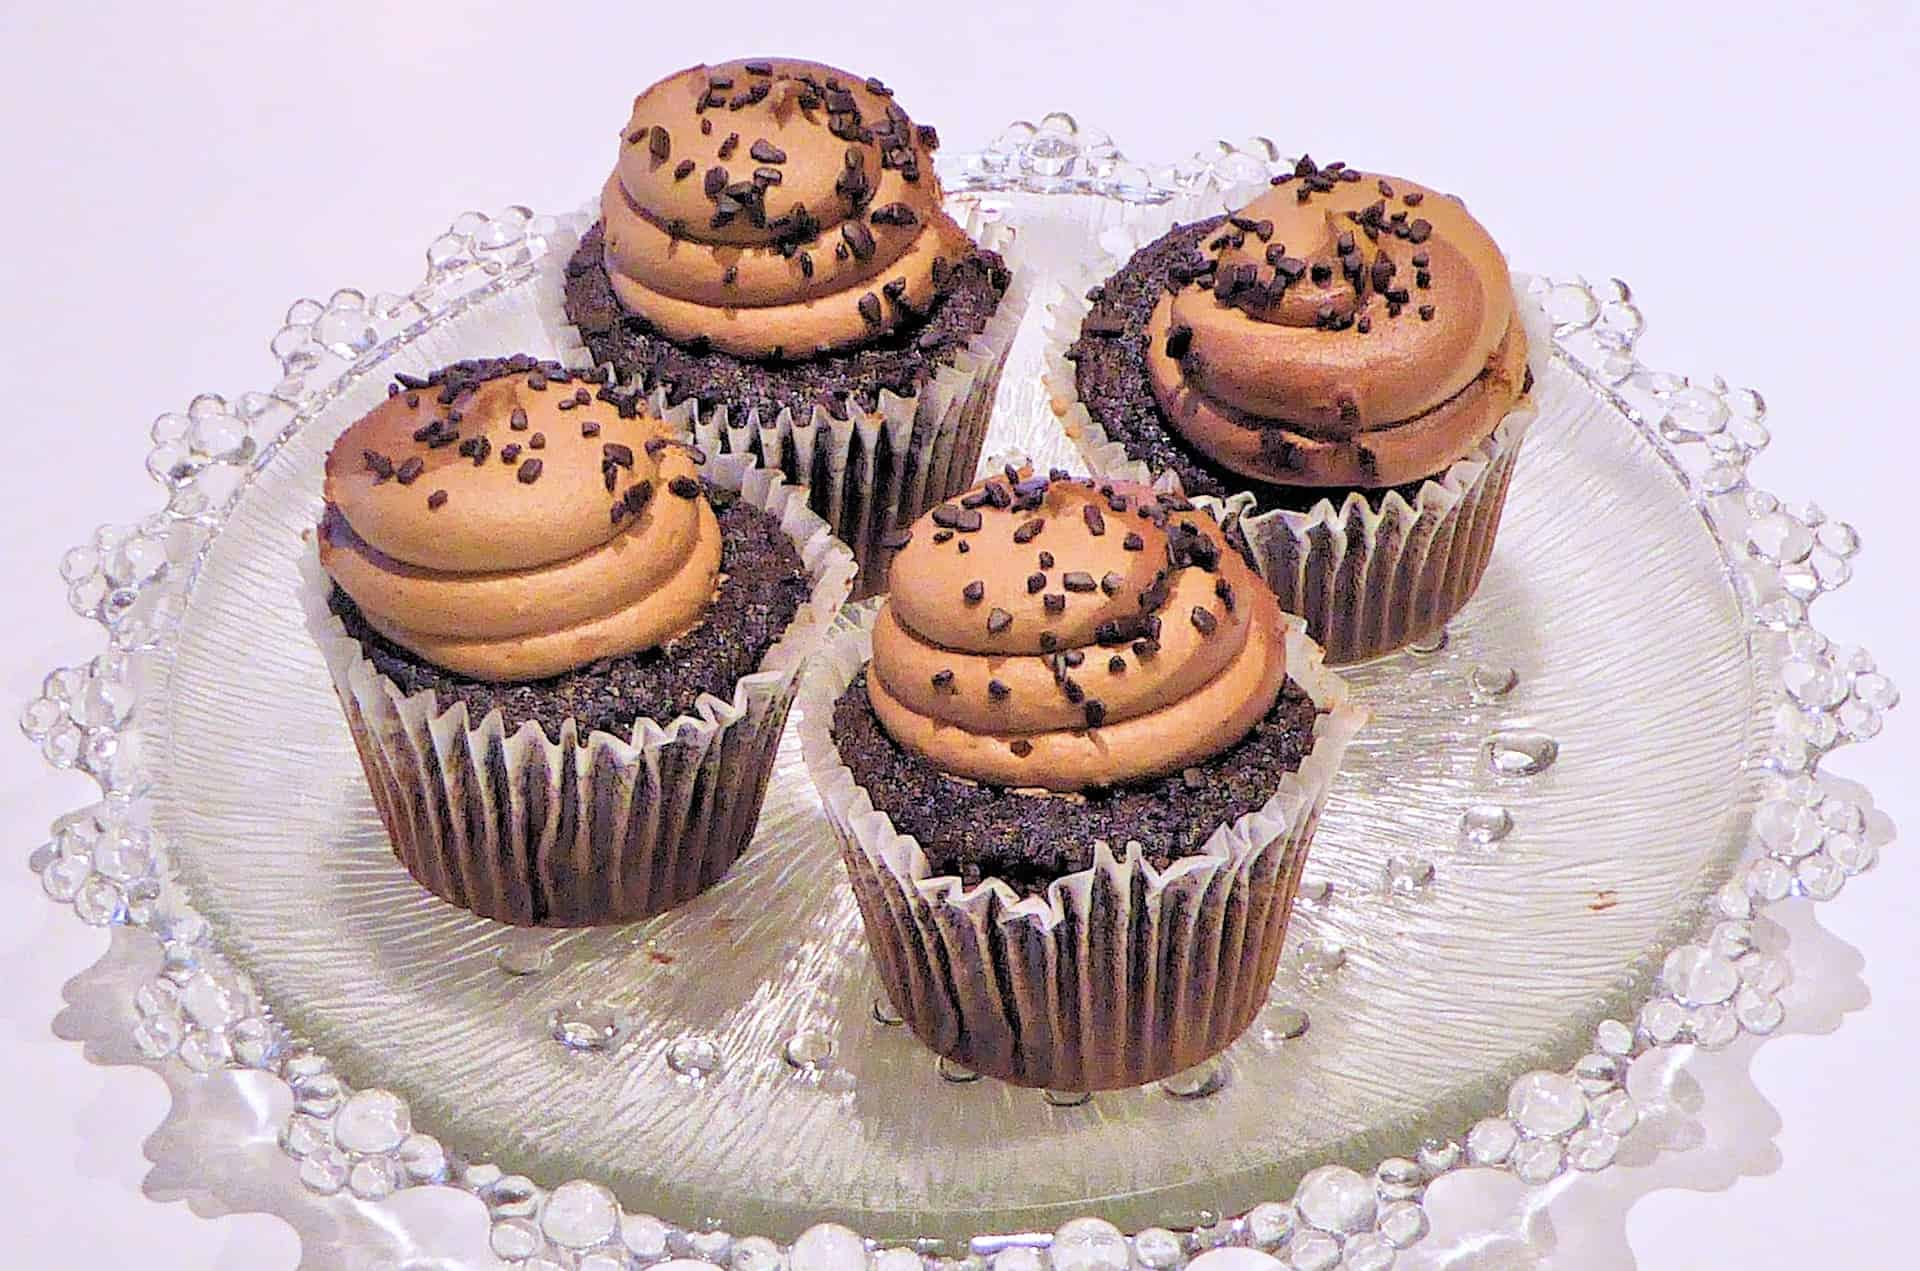 Who Doesn't Love a Good Chocolate Cupcake Recipe?